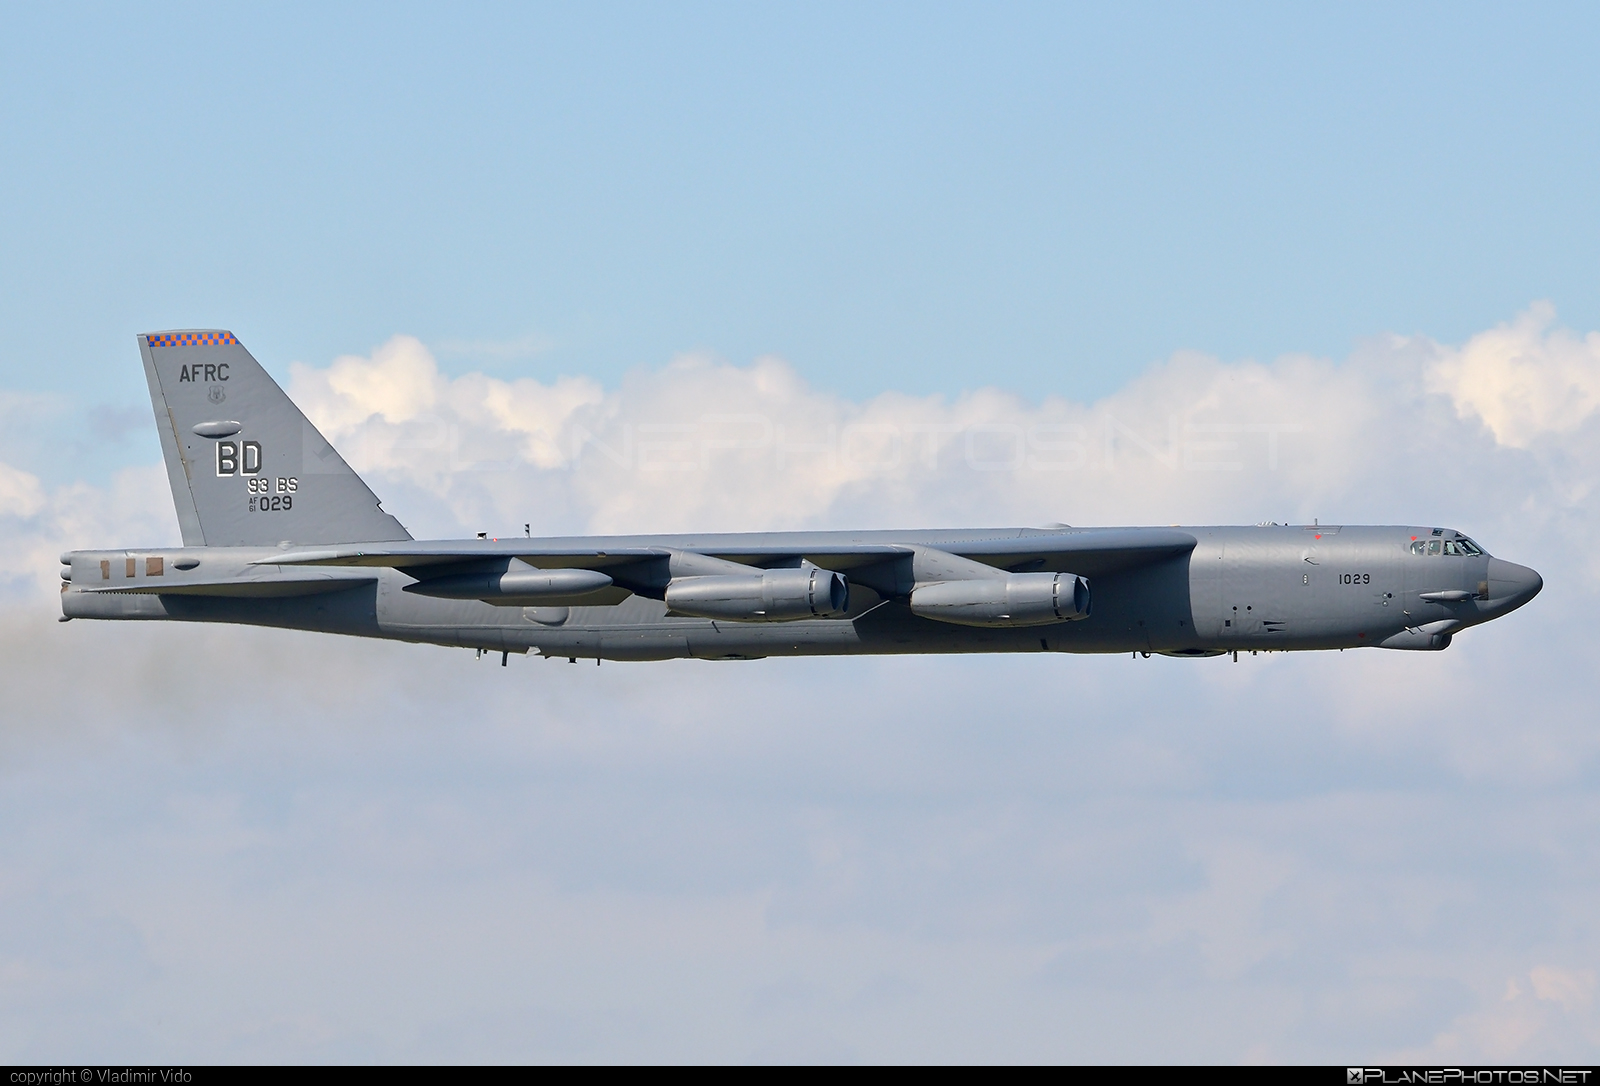 Boeing B-52H Stratofortress - 61-0029 operated by US Air Force (USAF) #b52 #boeing #stratofortress #usaf #usairforce